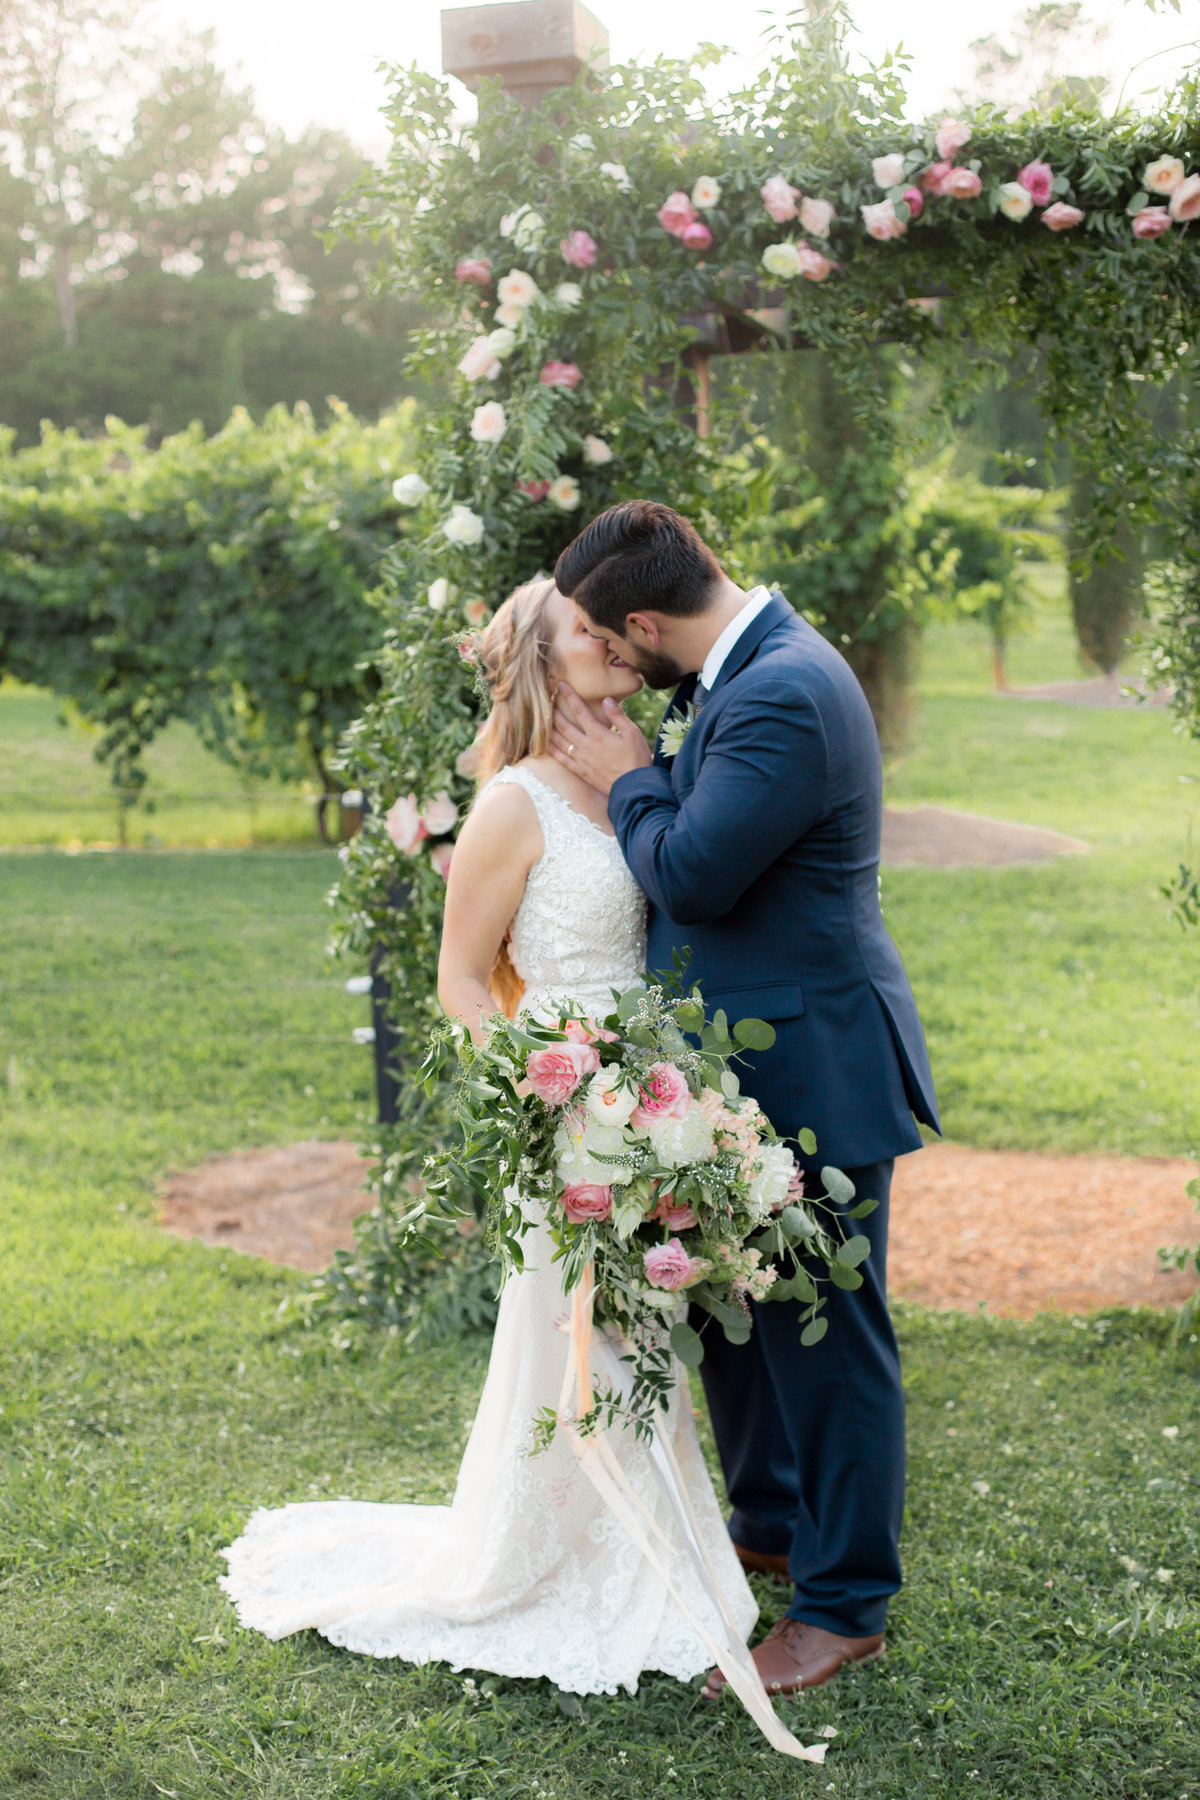 Bride and groom with bouquet in natural light vineyard